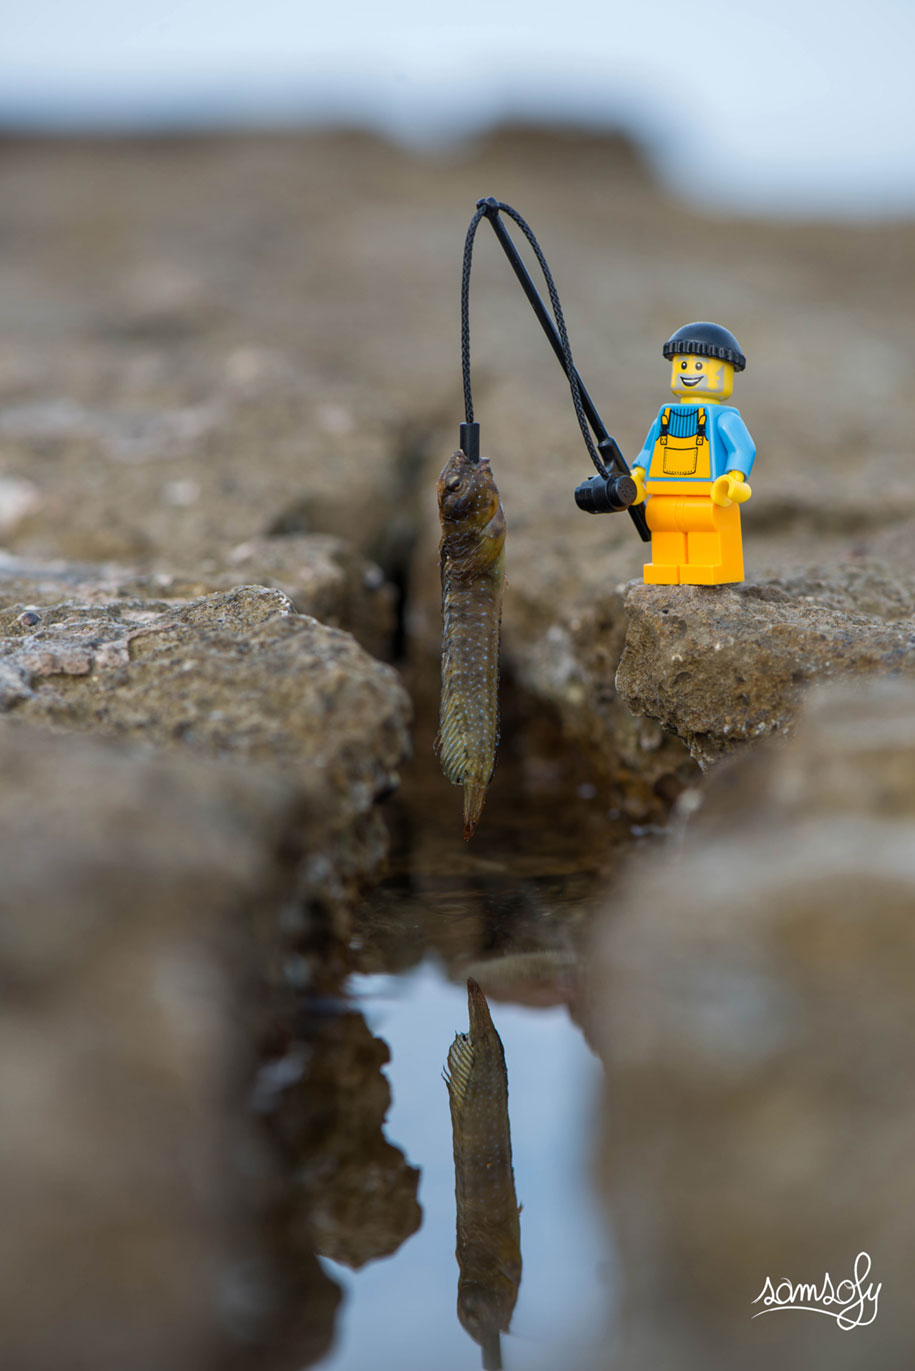 Miniature LEGO Adventures by Samsofy (21)